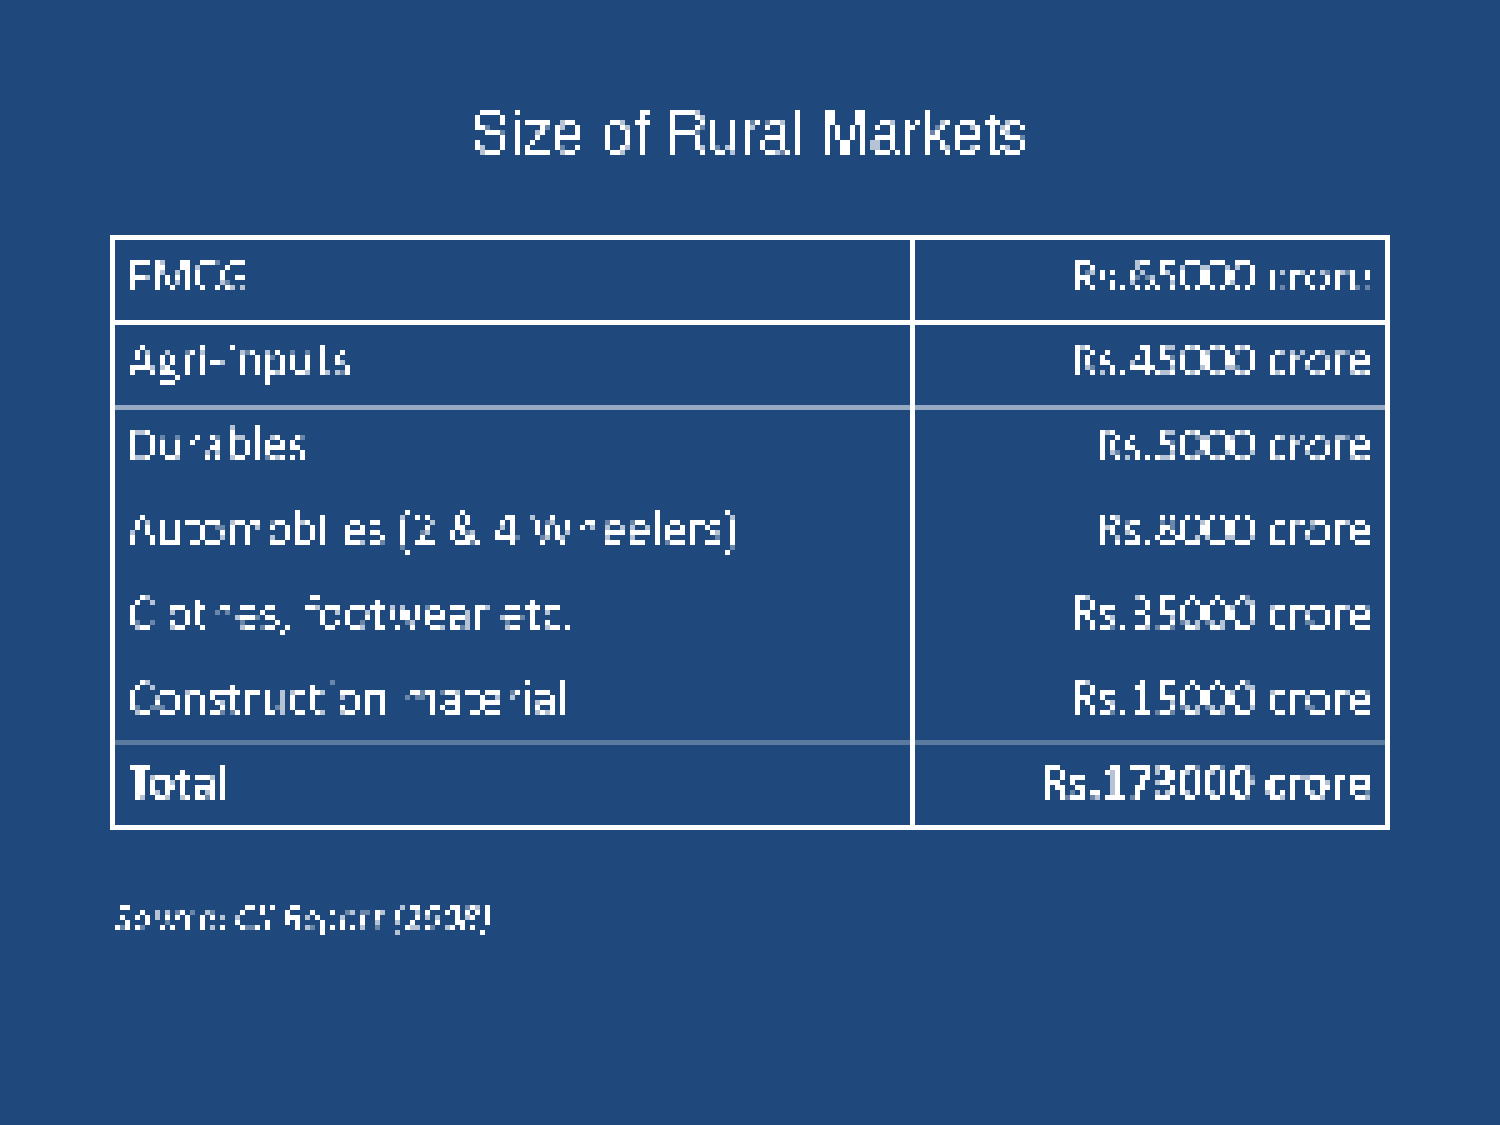 """rural cinema marketing management report But today, the marketers have realized the potential in the rural market, which has  become critical for them, be  kanwal gurleen singh at apeejay institute of  management technical campus  earlier, van campaigns, cinema commercials  and a few wall paintings sufficed the  report, (2006), """"fmcg"""",(available at."""